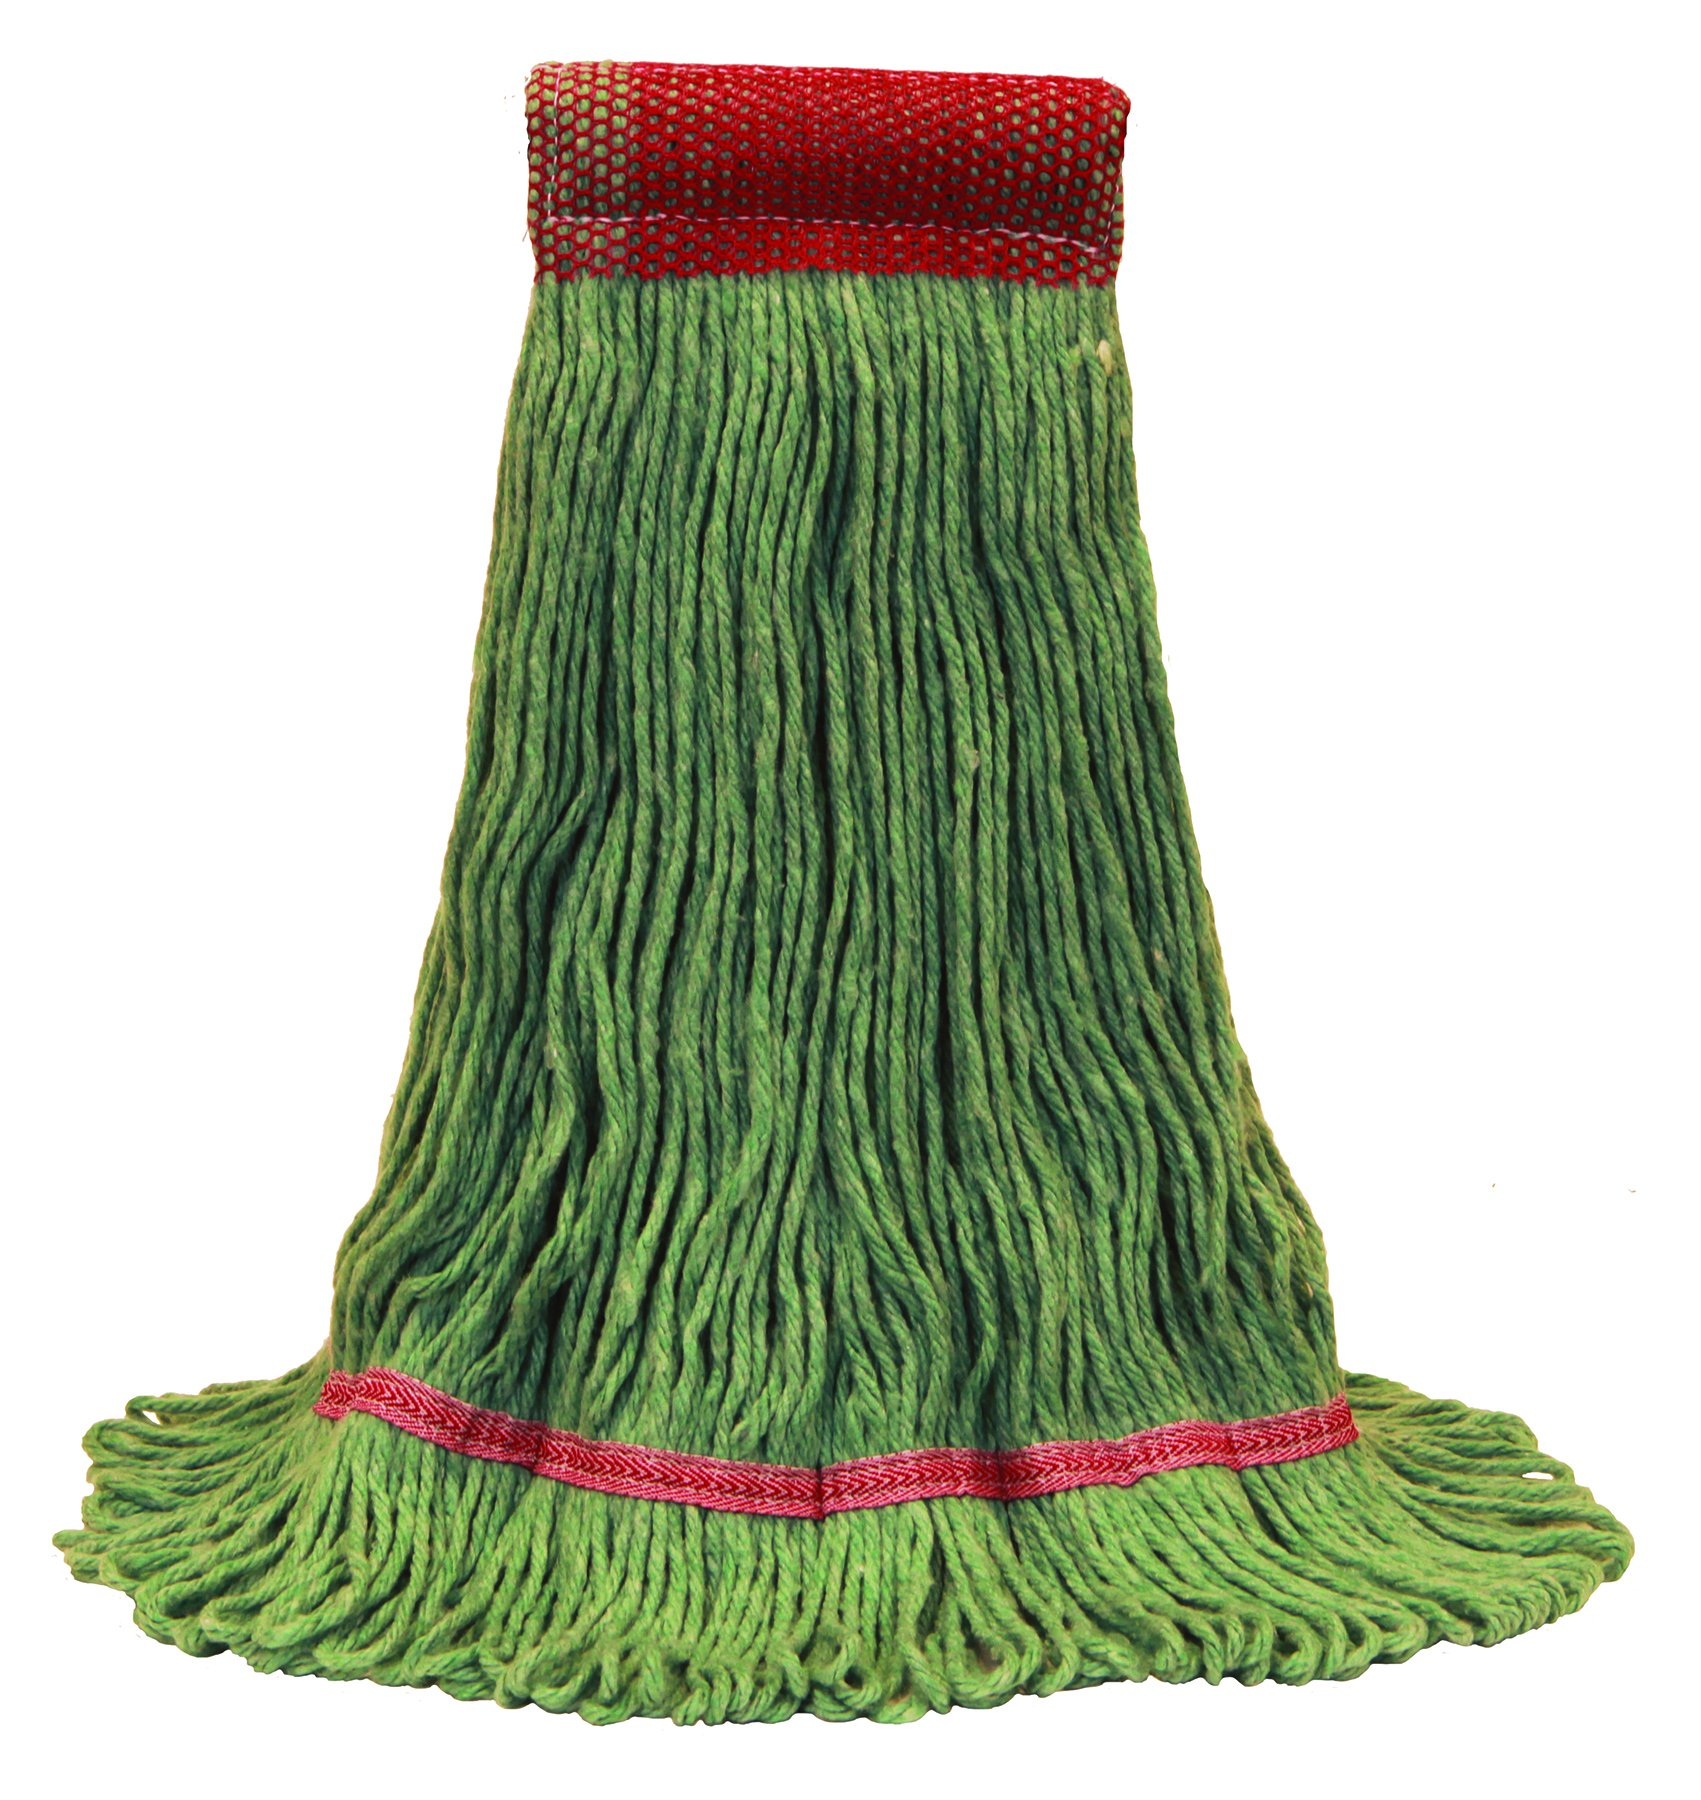 O'Cedar Commercial 97243 Healthi-Pro Anti-Microbial Mop, Large, Green (Pack of 6)